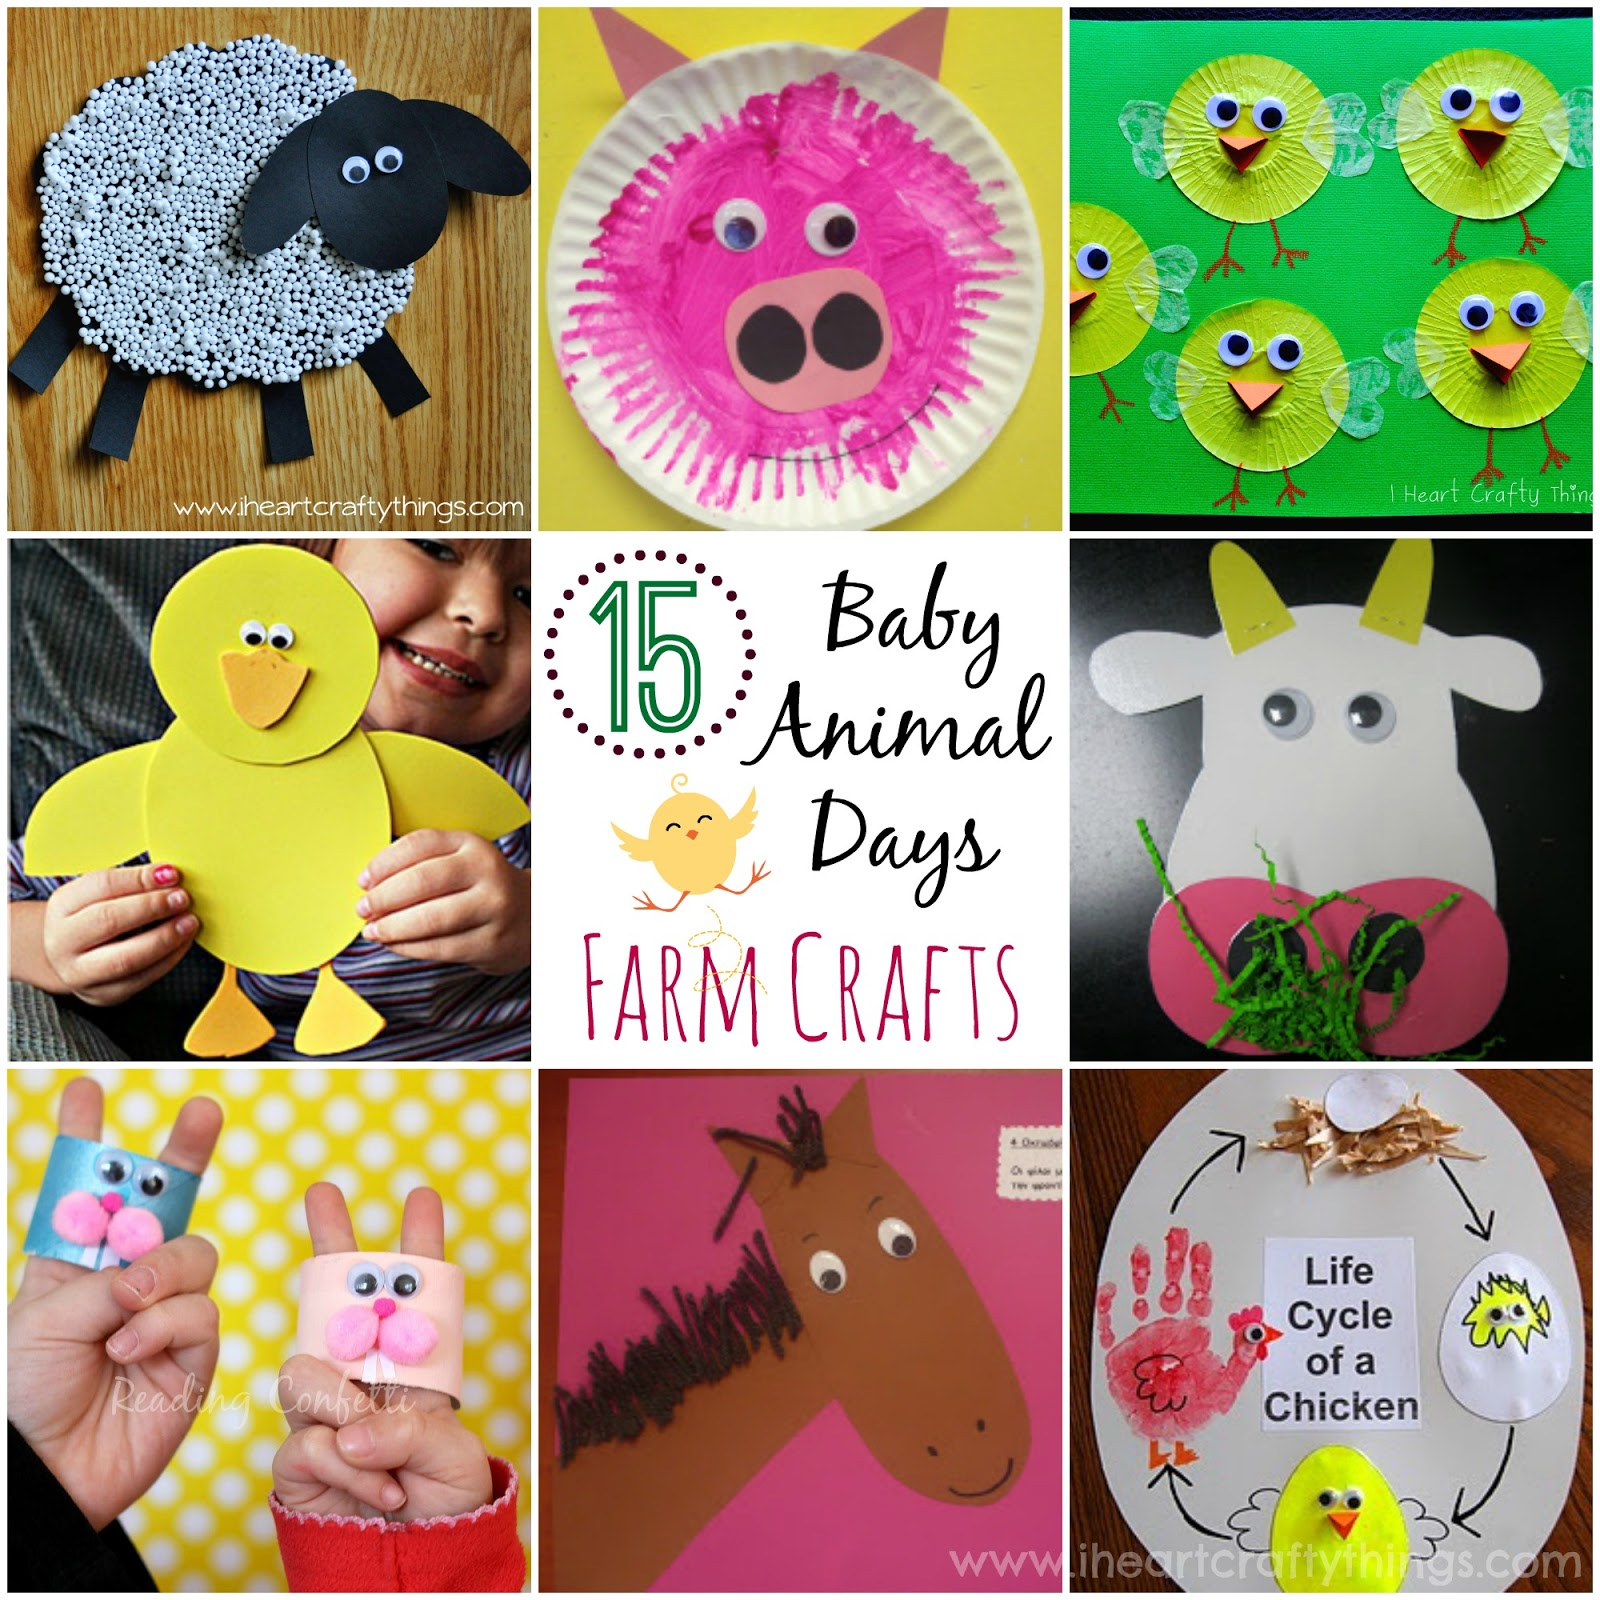 I Heart Crafty Things Sheep Craft For Kids